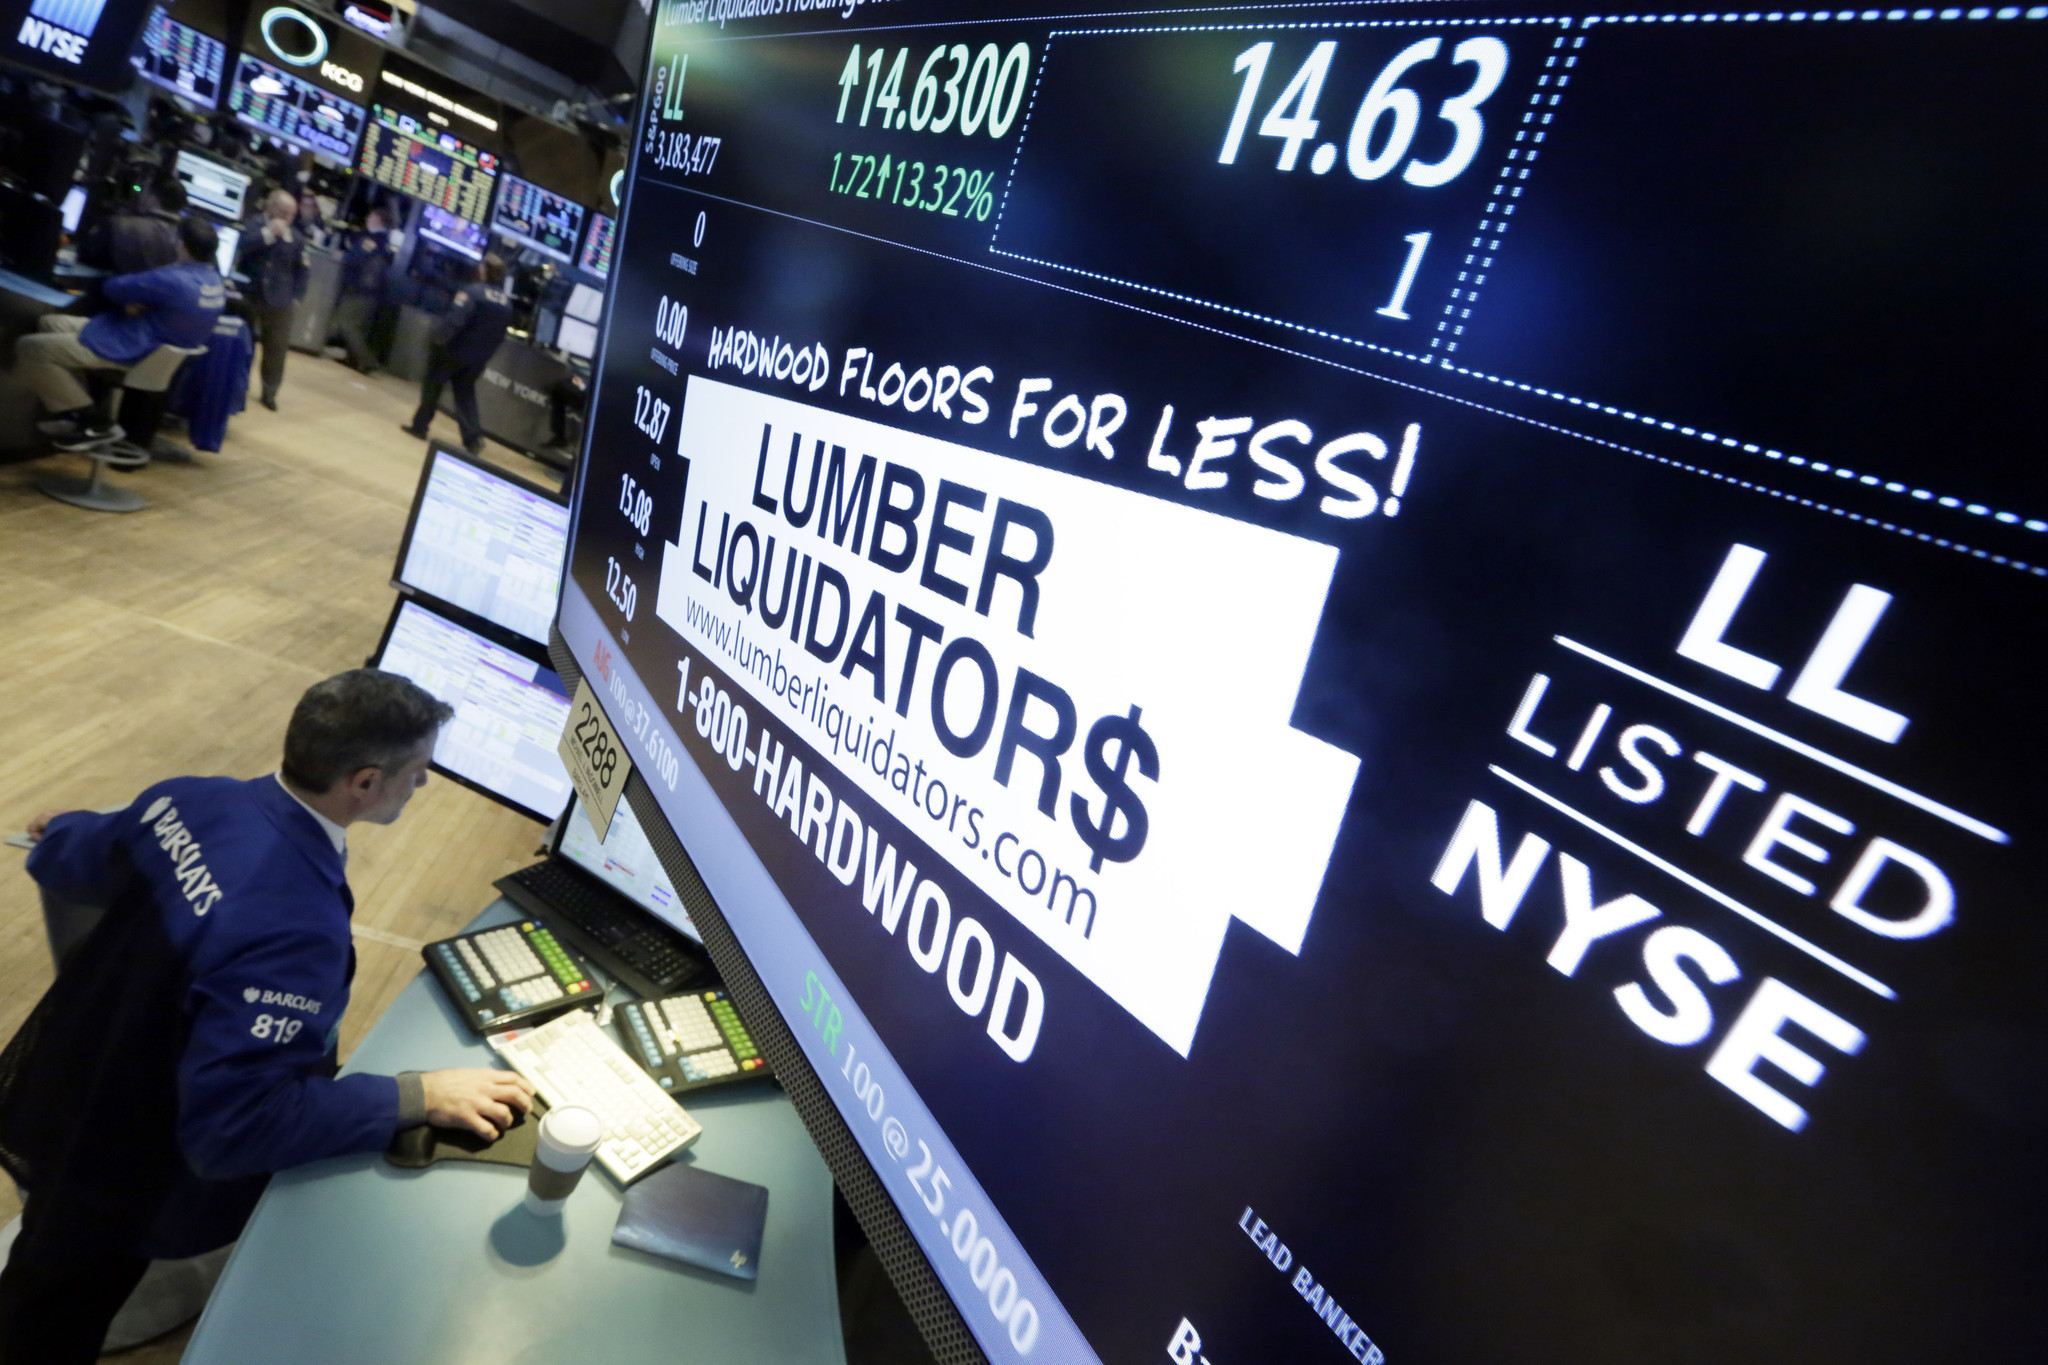 Report Lumber Liquidators Flooring Has Low Cancer Risk